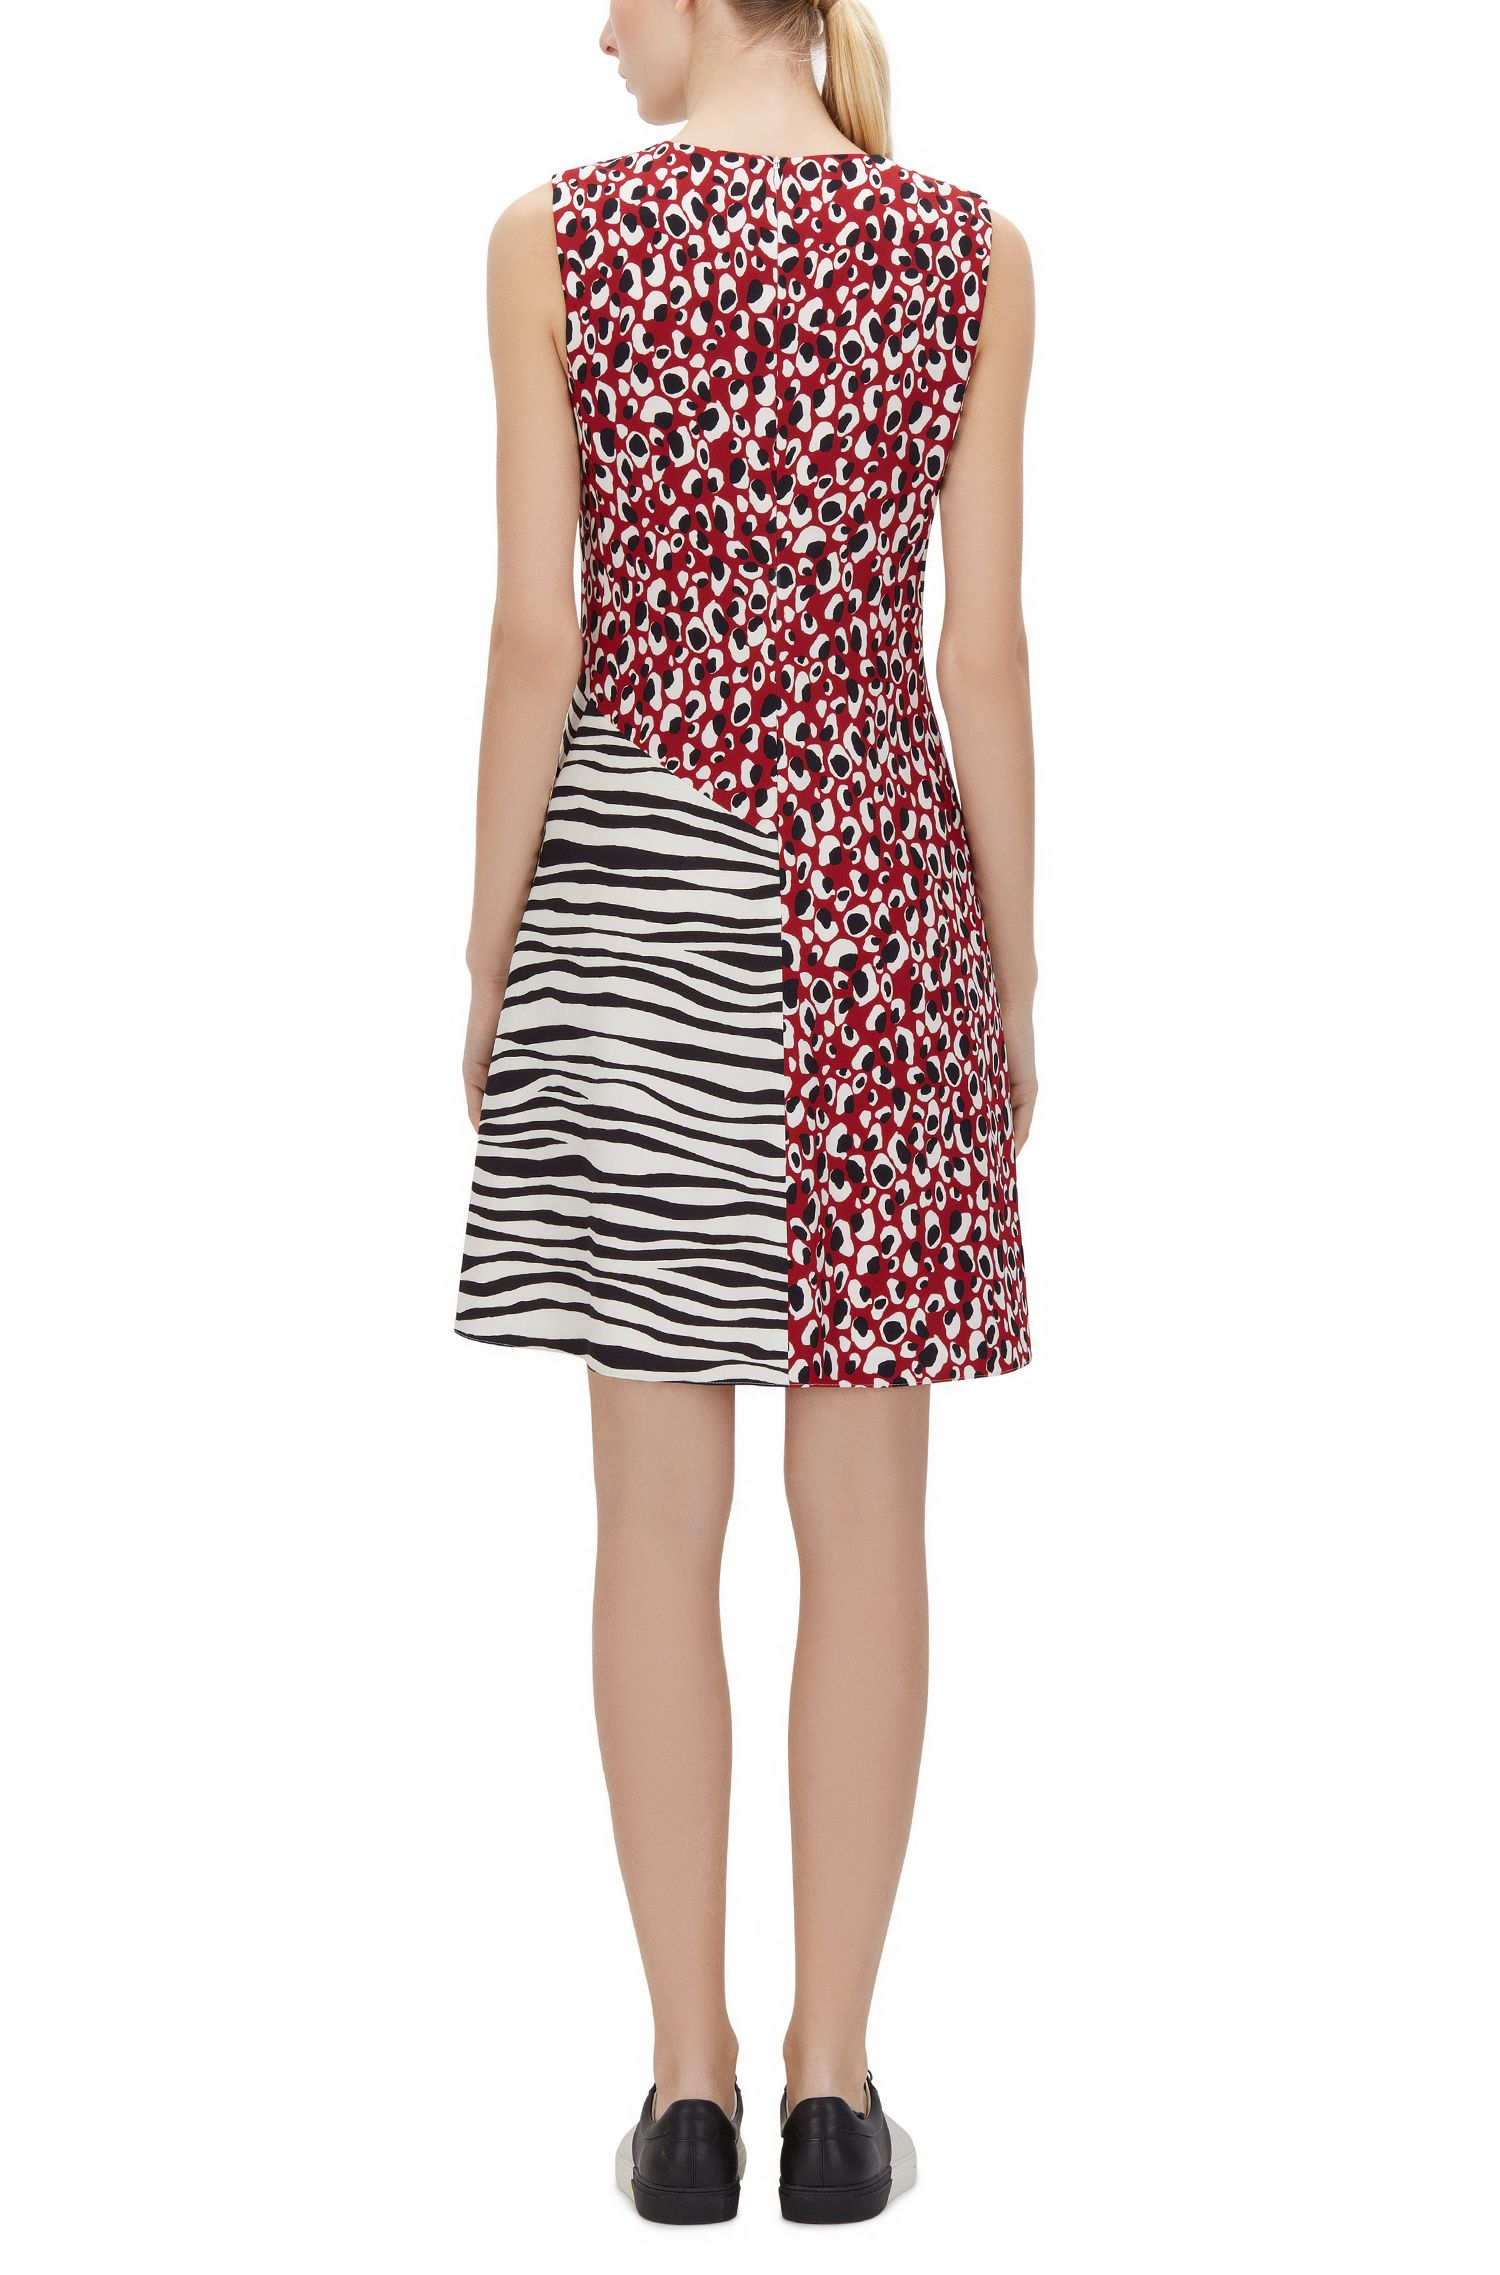 Animal-Print Stretch Dress | Diseba